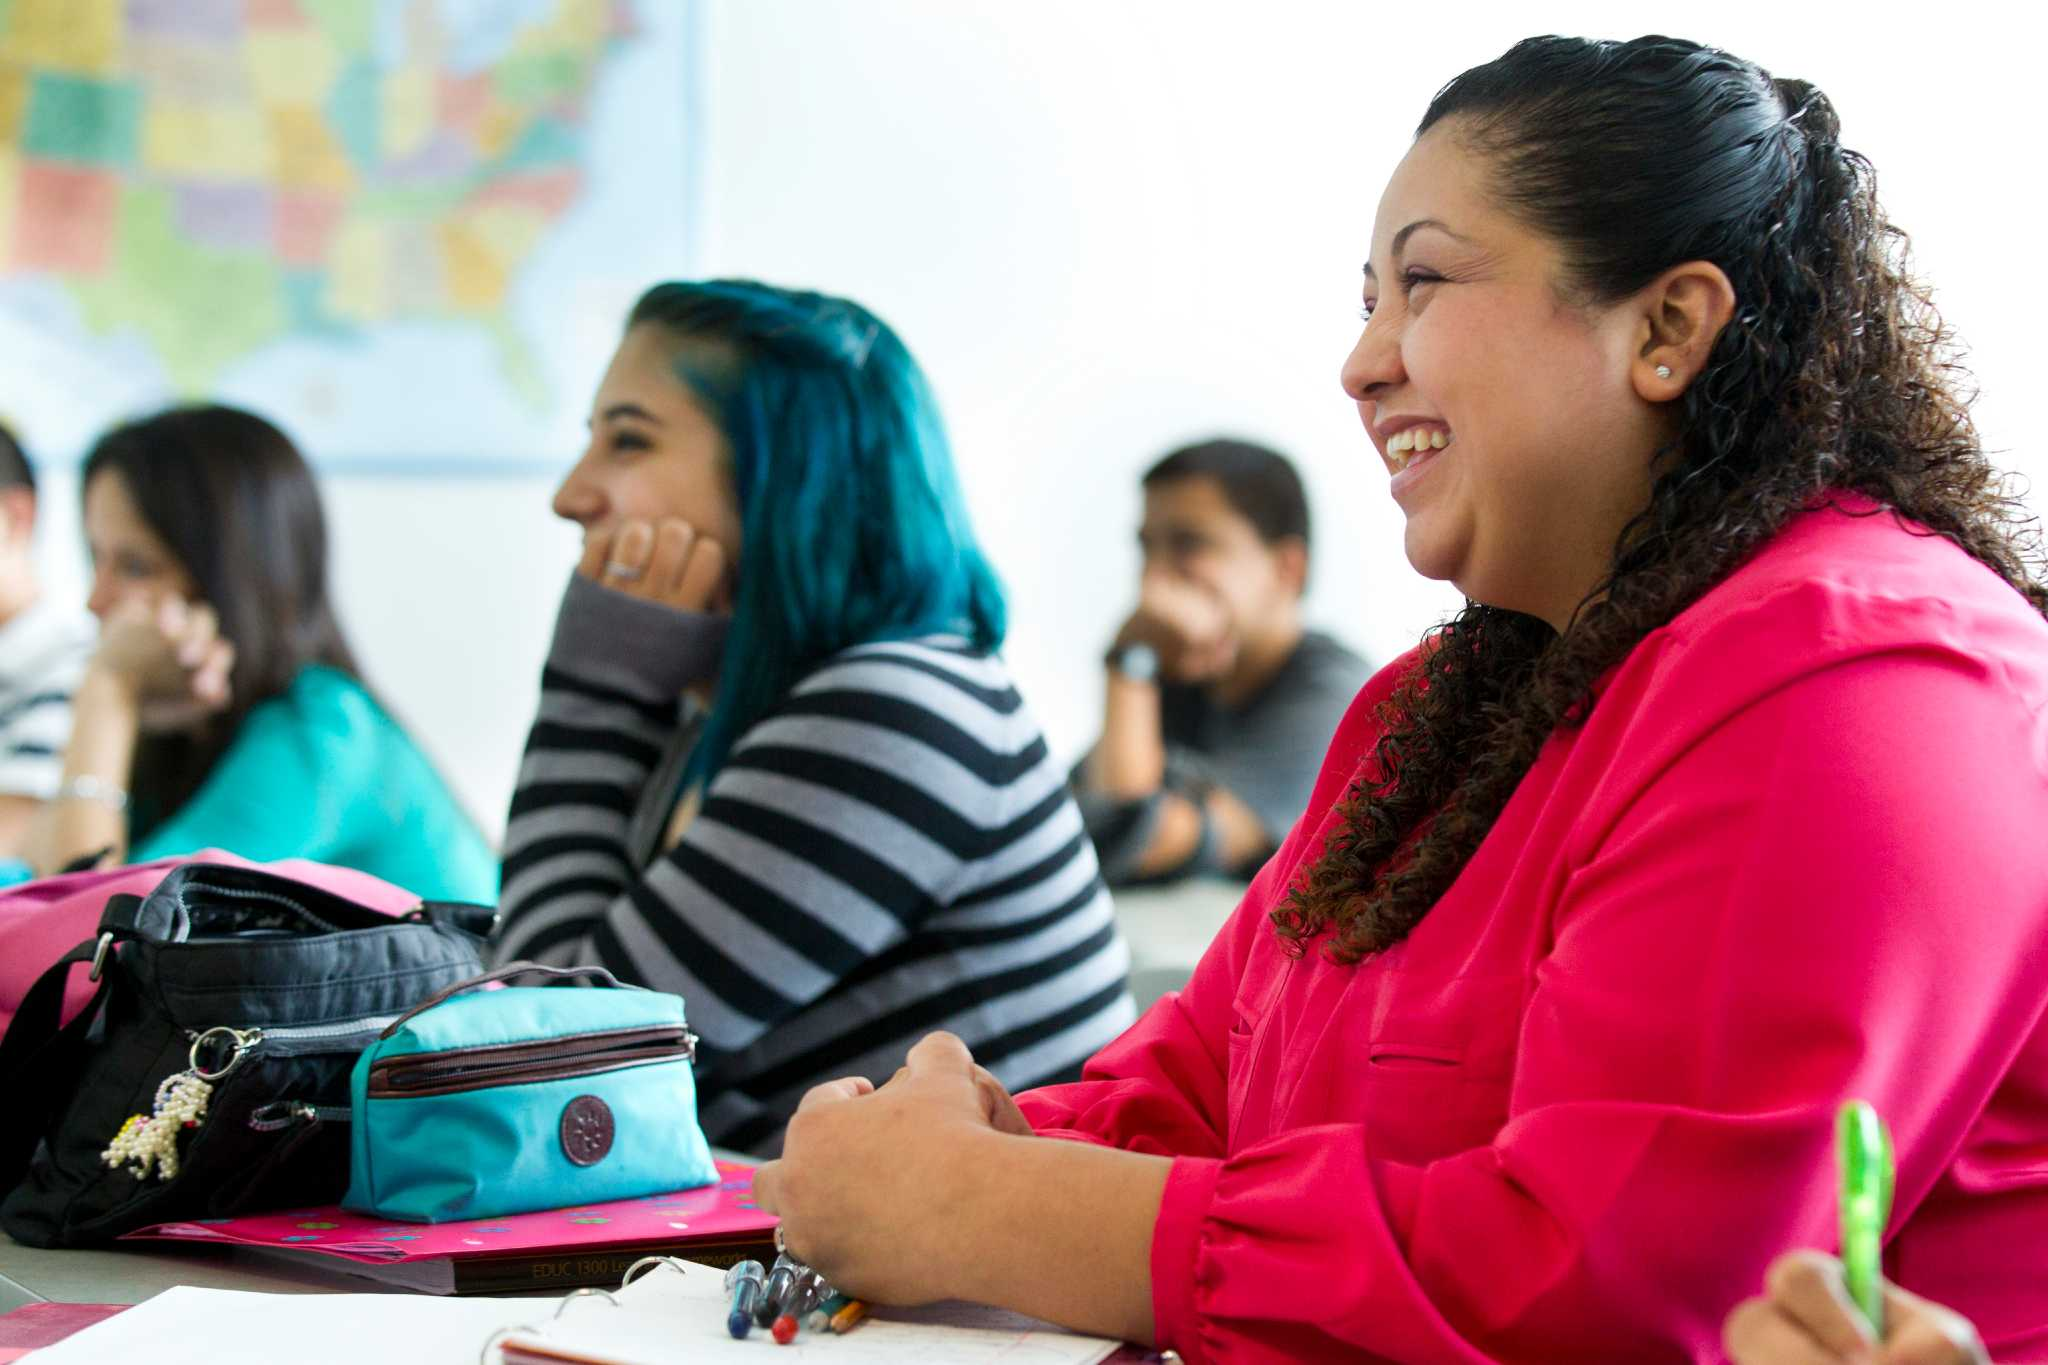 educating hispanic students essay Free hispanics papers, essays, and research papers  their education at risk,  educational programs are put in place to help students not make those mistakes .